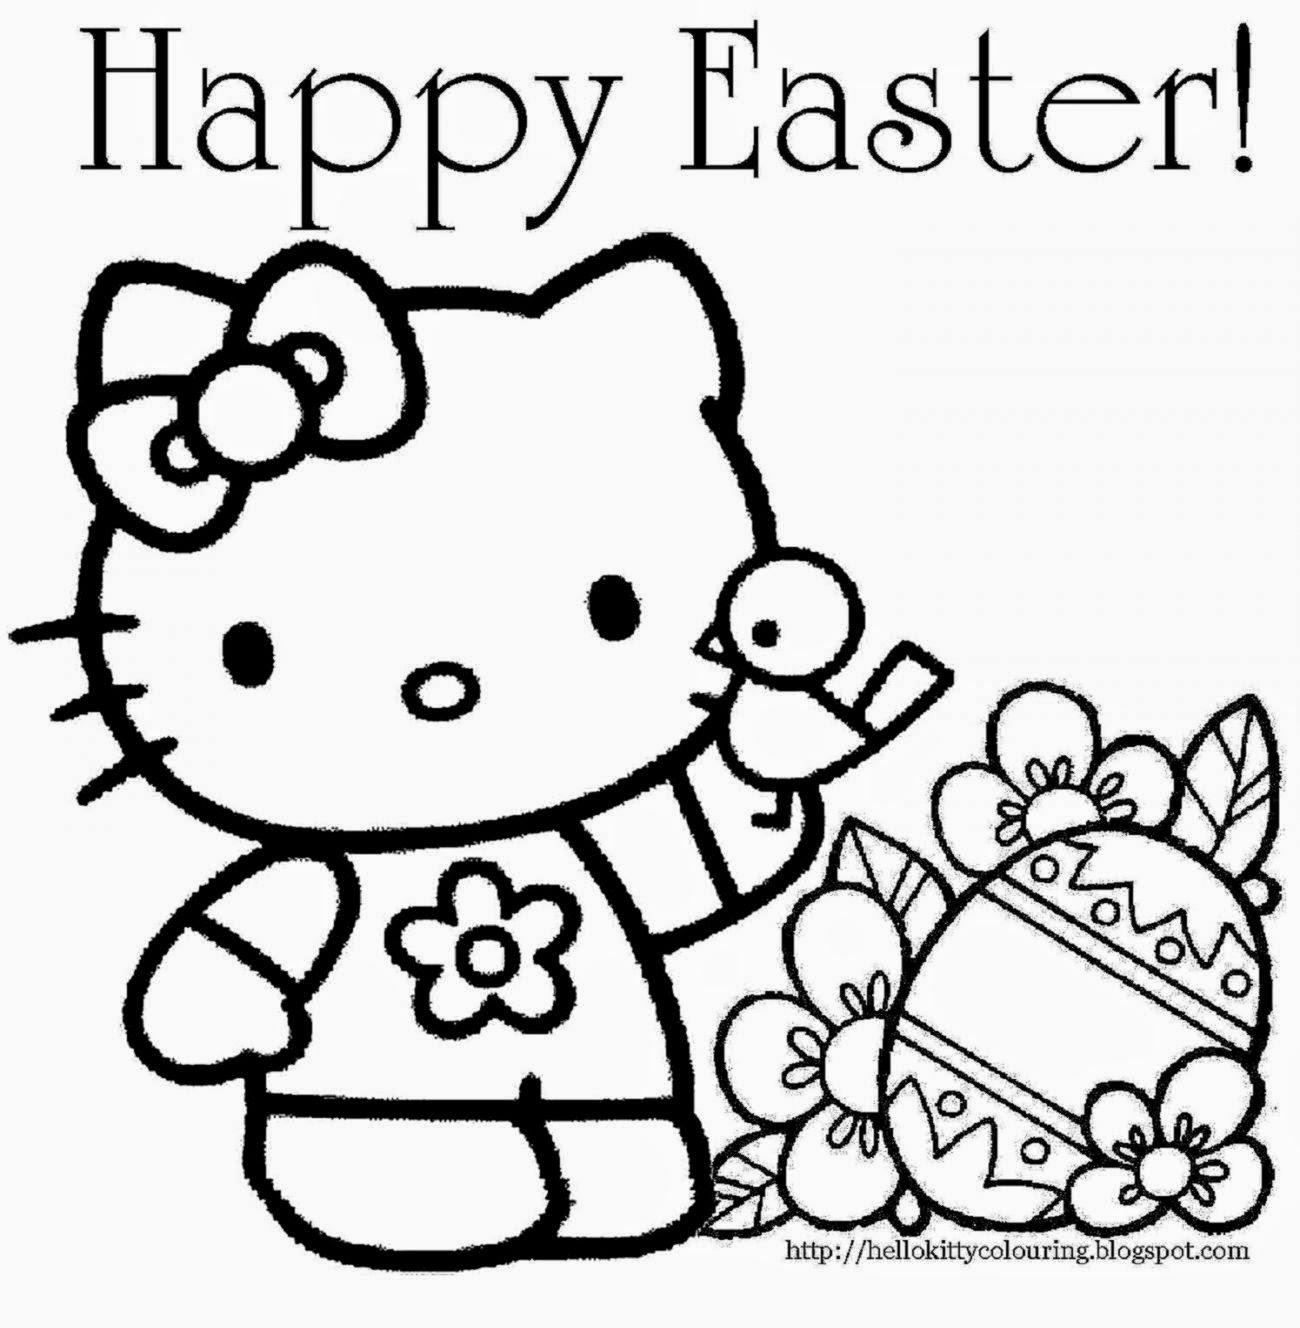 Printable coloring pages elmo - Happy Easter Coloring Pages Printable